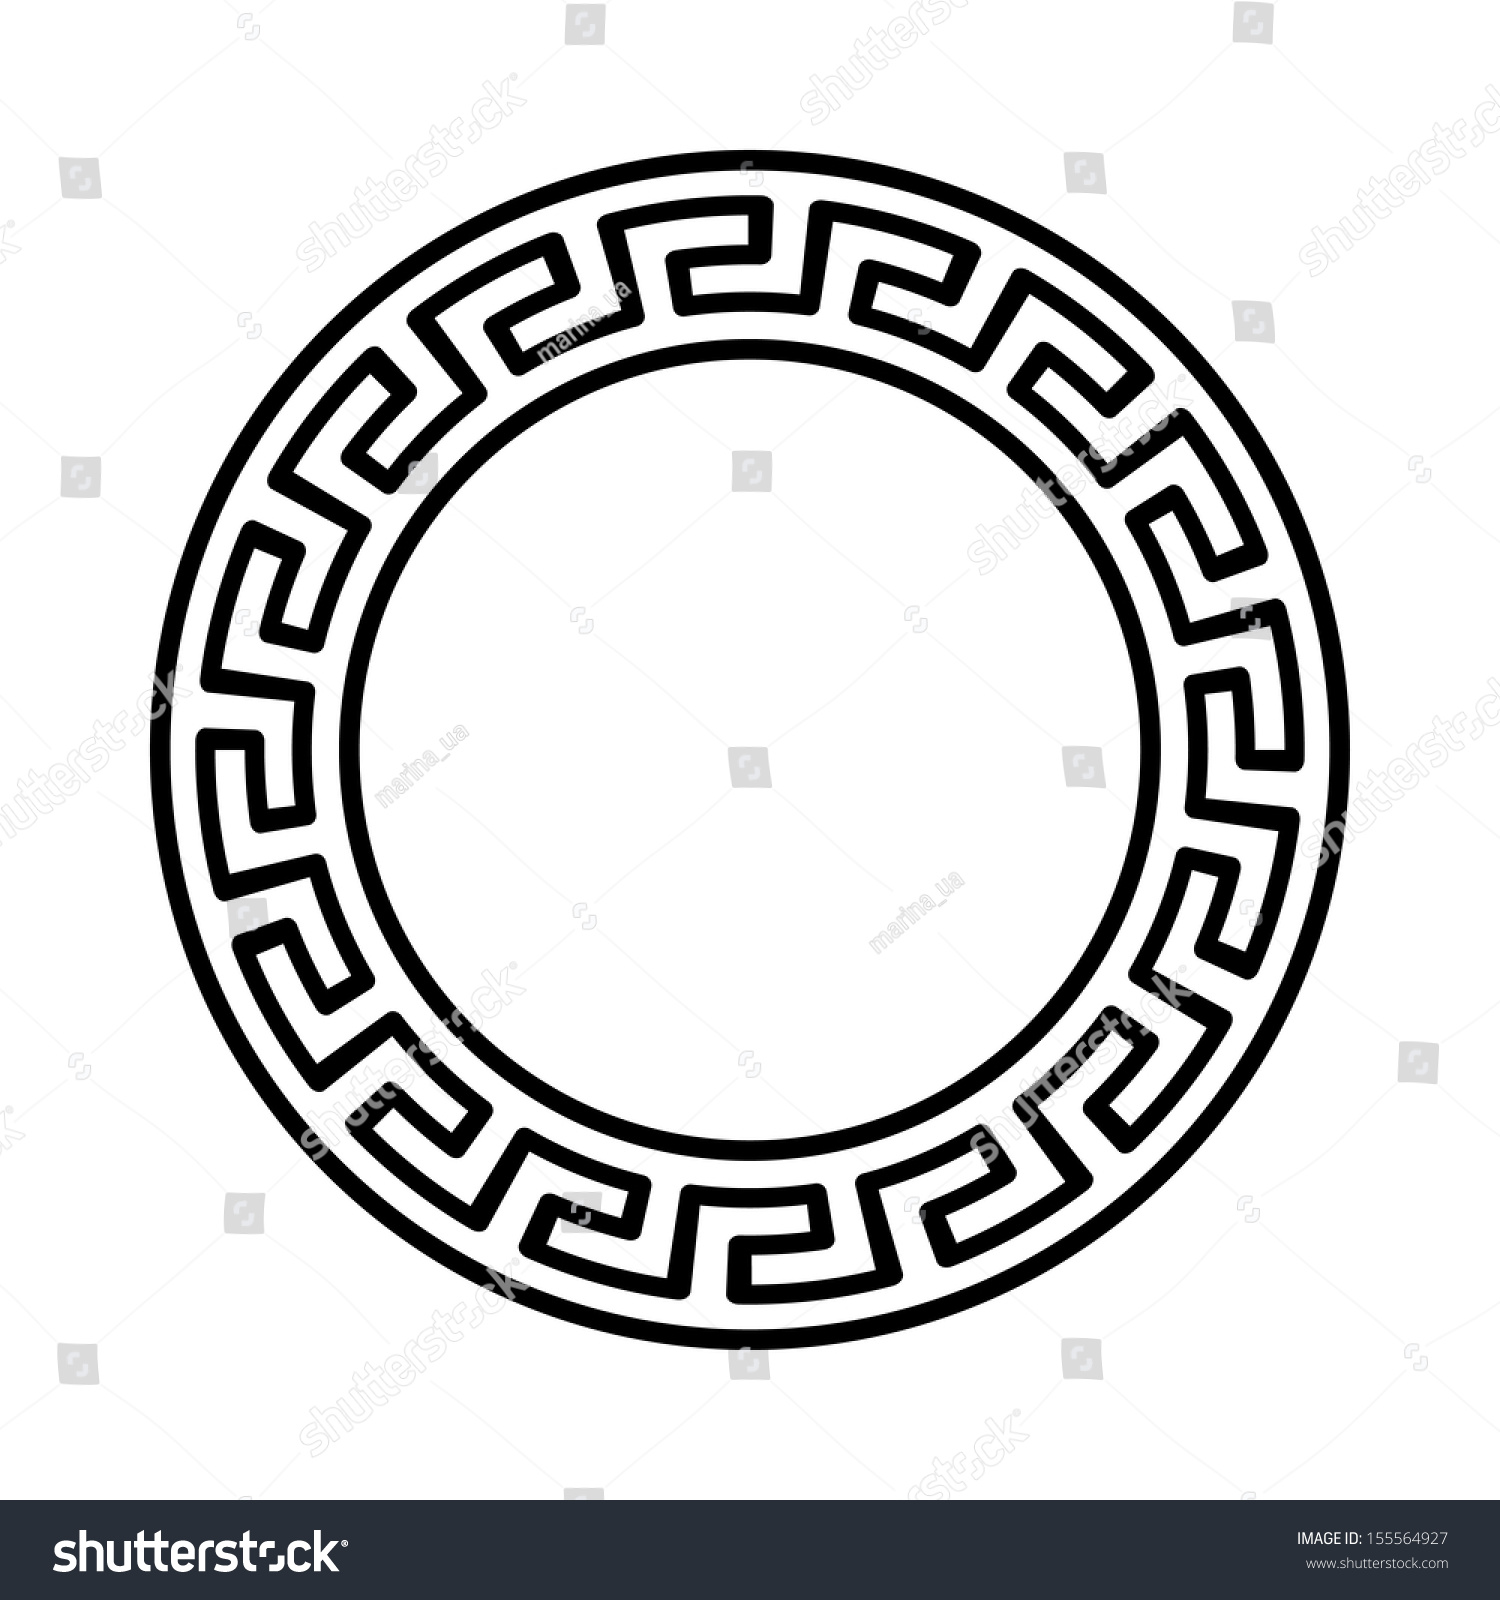 Circle ornament round frame rosette ancient stock vector 155564927 circle ornament round frame rosette of ancient elements greek national antique round pattern biocorpaavc Image collections